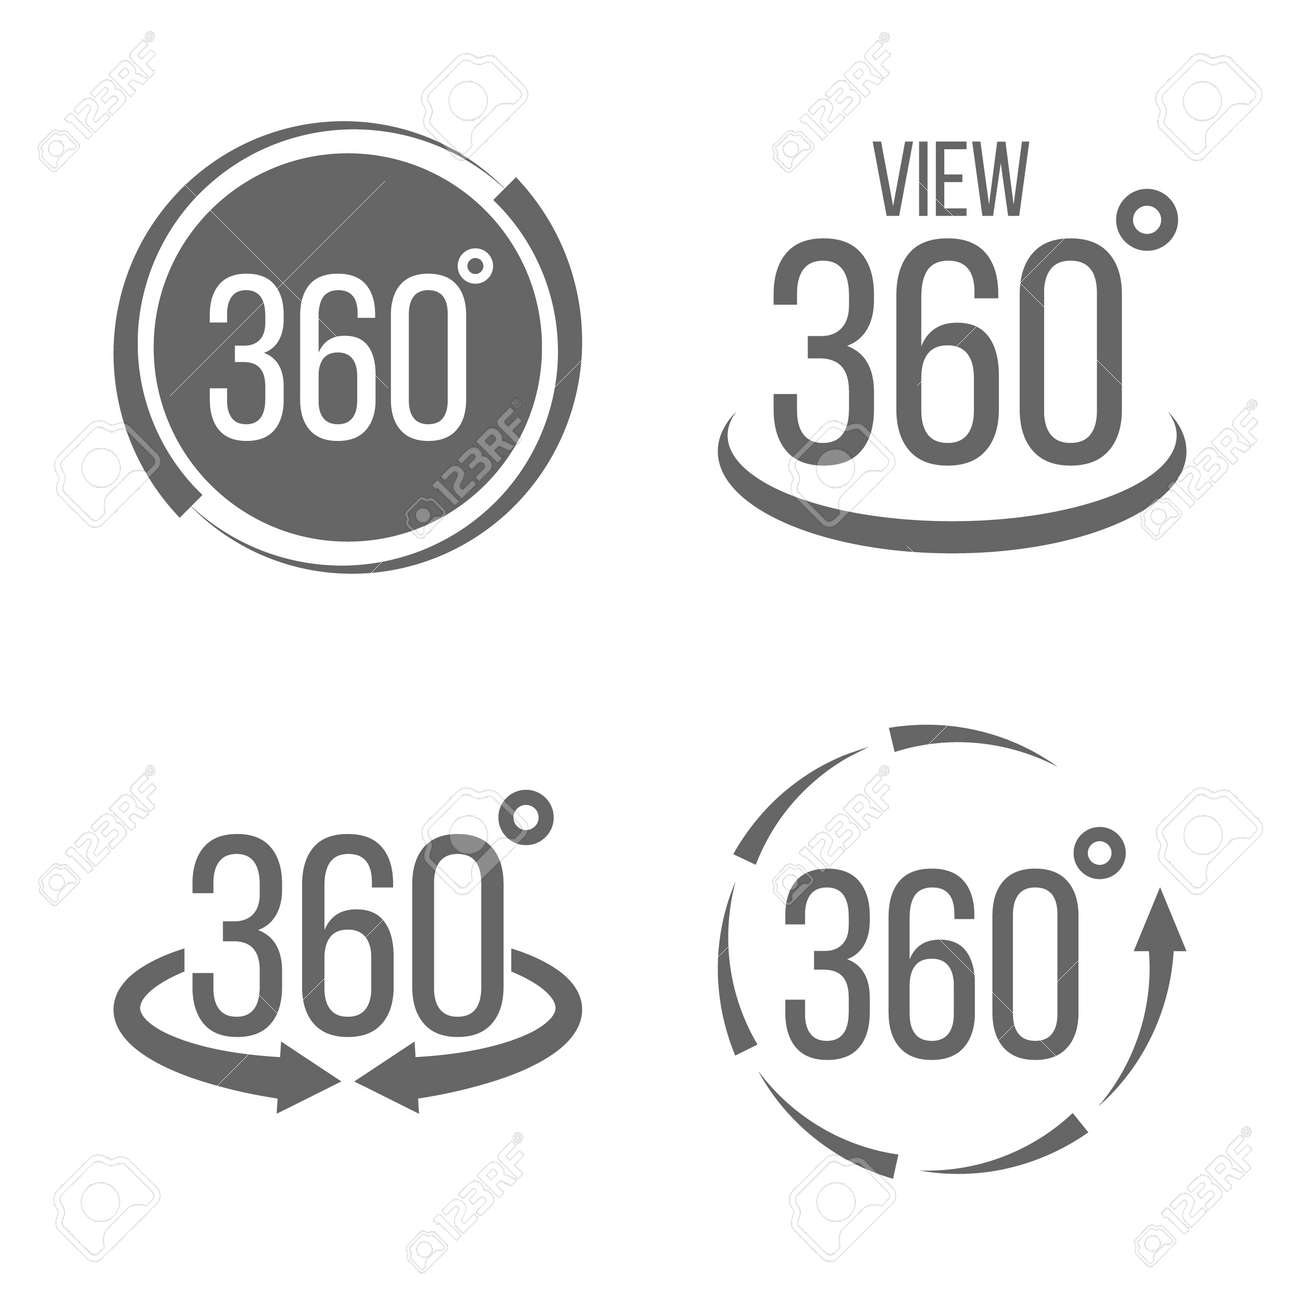 Creative vector illustration of 360 degrees view related sign set isolated on transparent background. Art design. Abstract concept graphic rotation arrows, panorama, virtual reality helmet element - 103169946